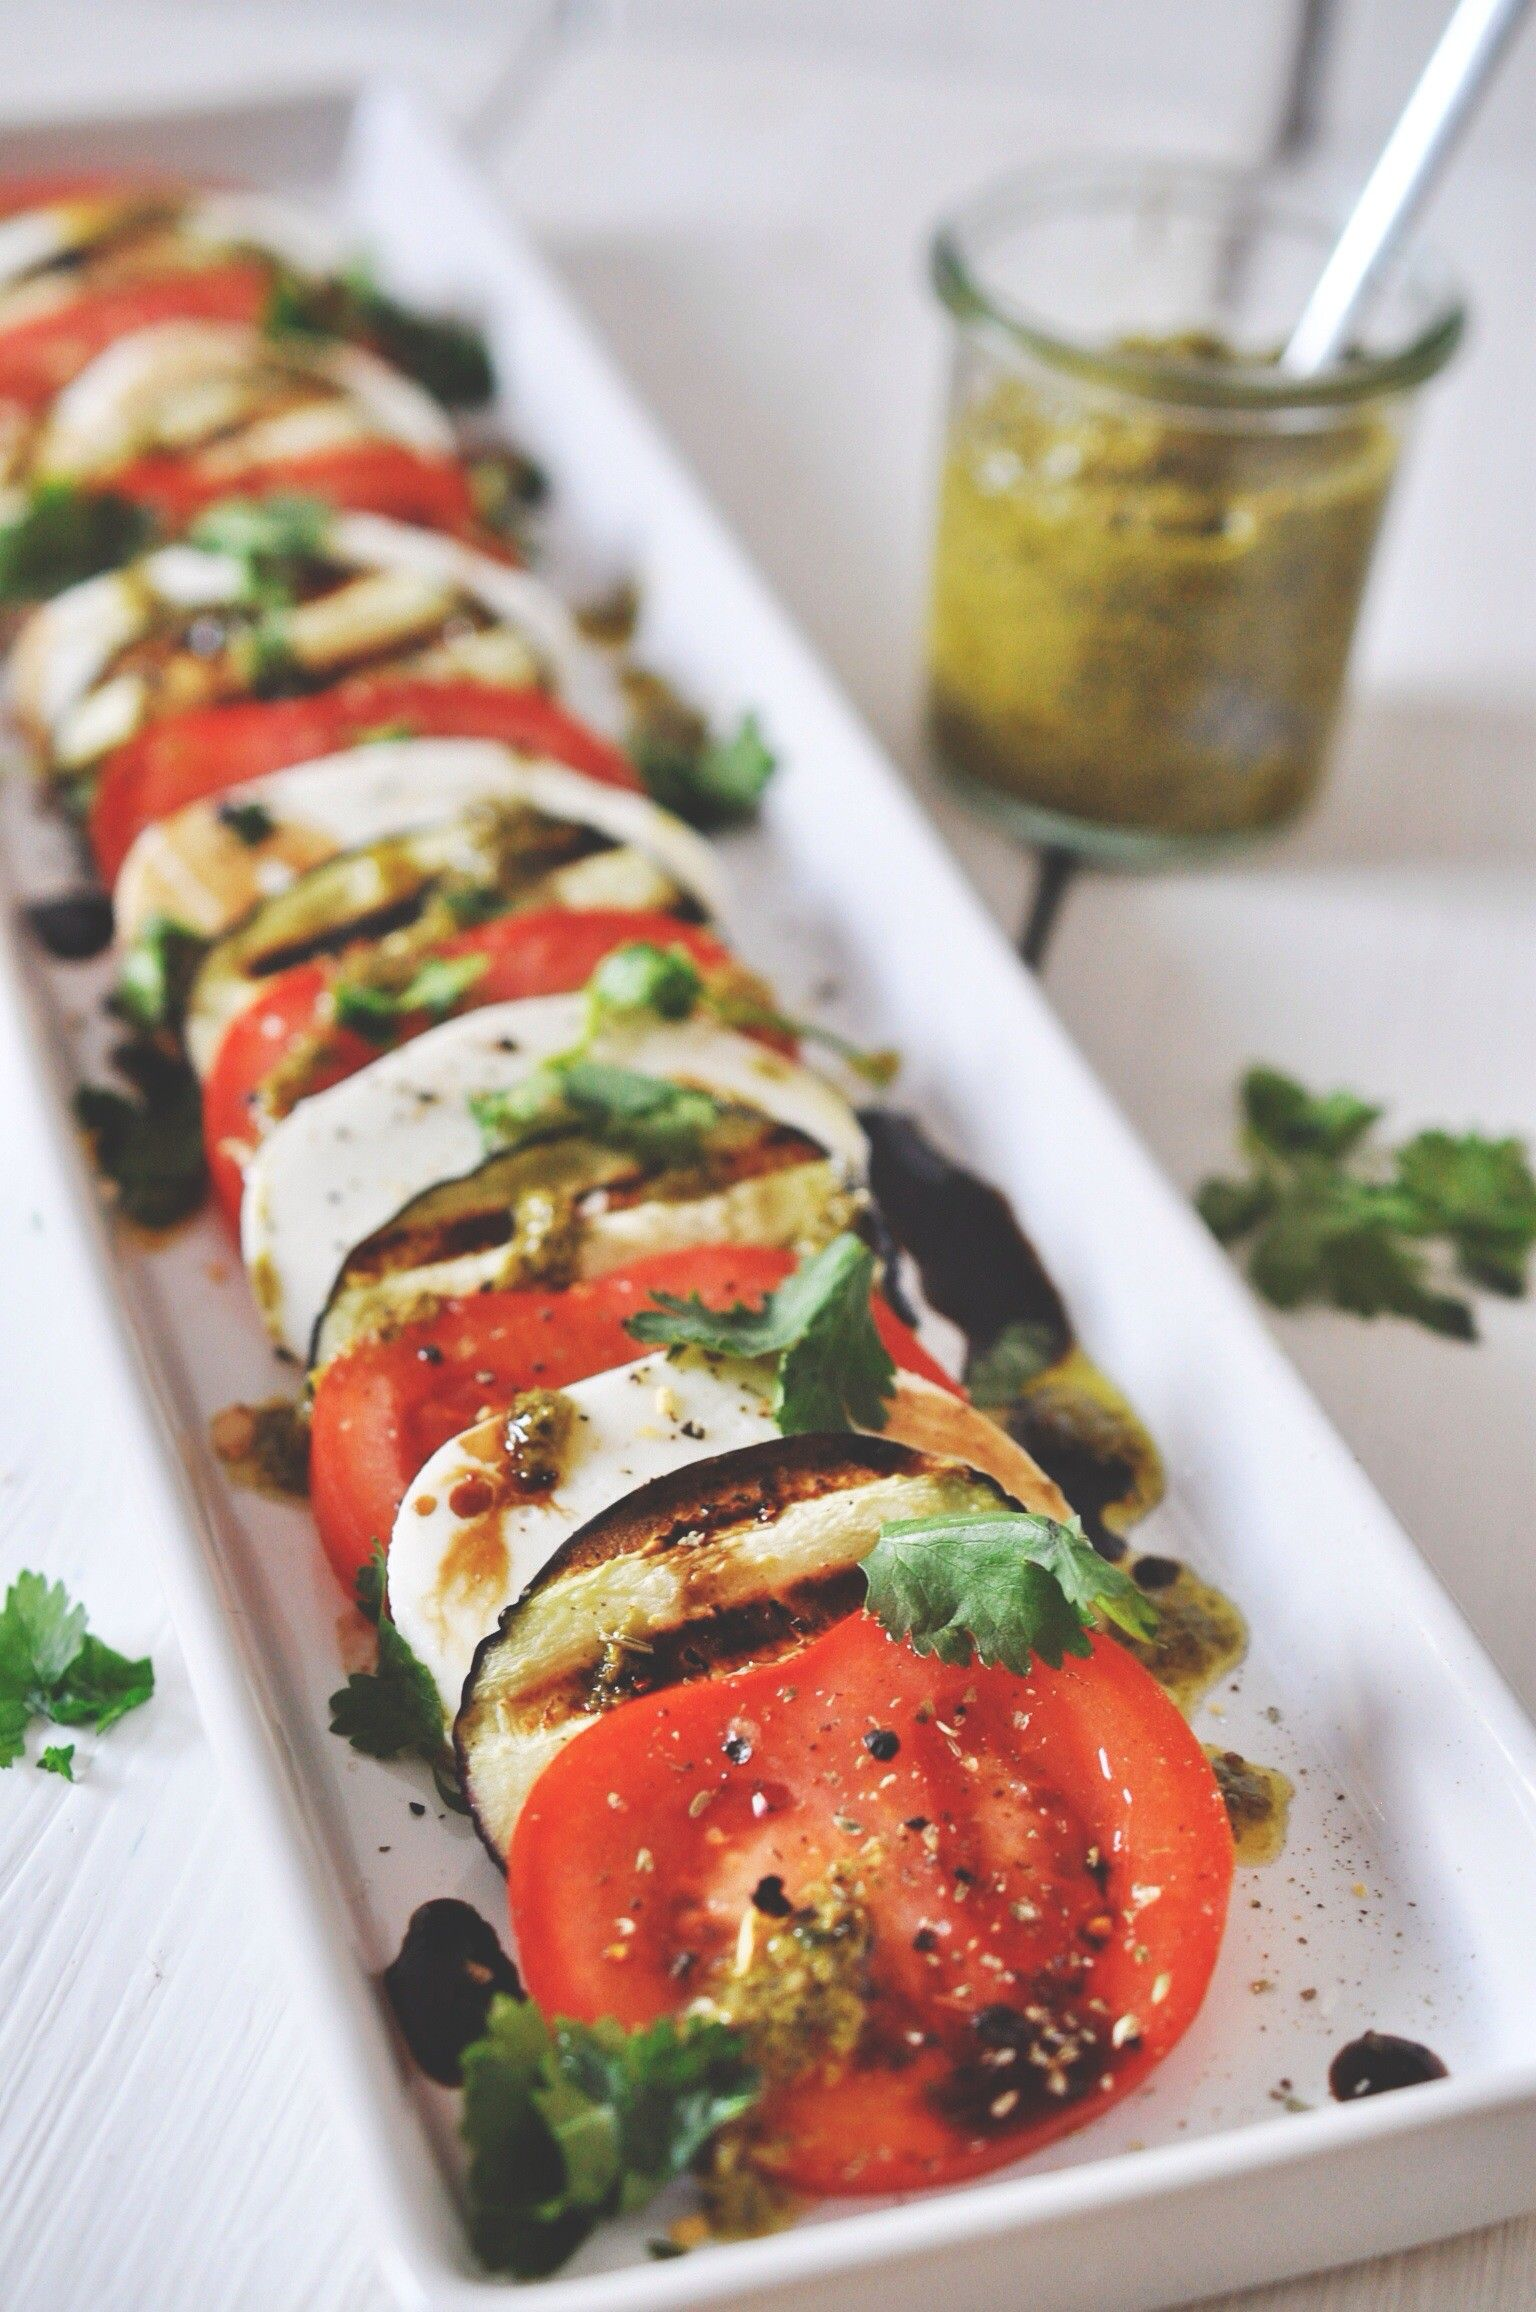 nads healthy kitchen  tomatomozzarella and grilled eggplant salad with basilolive oil aceto